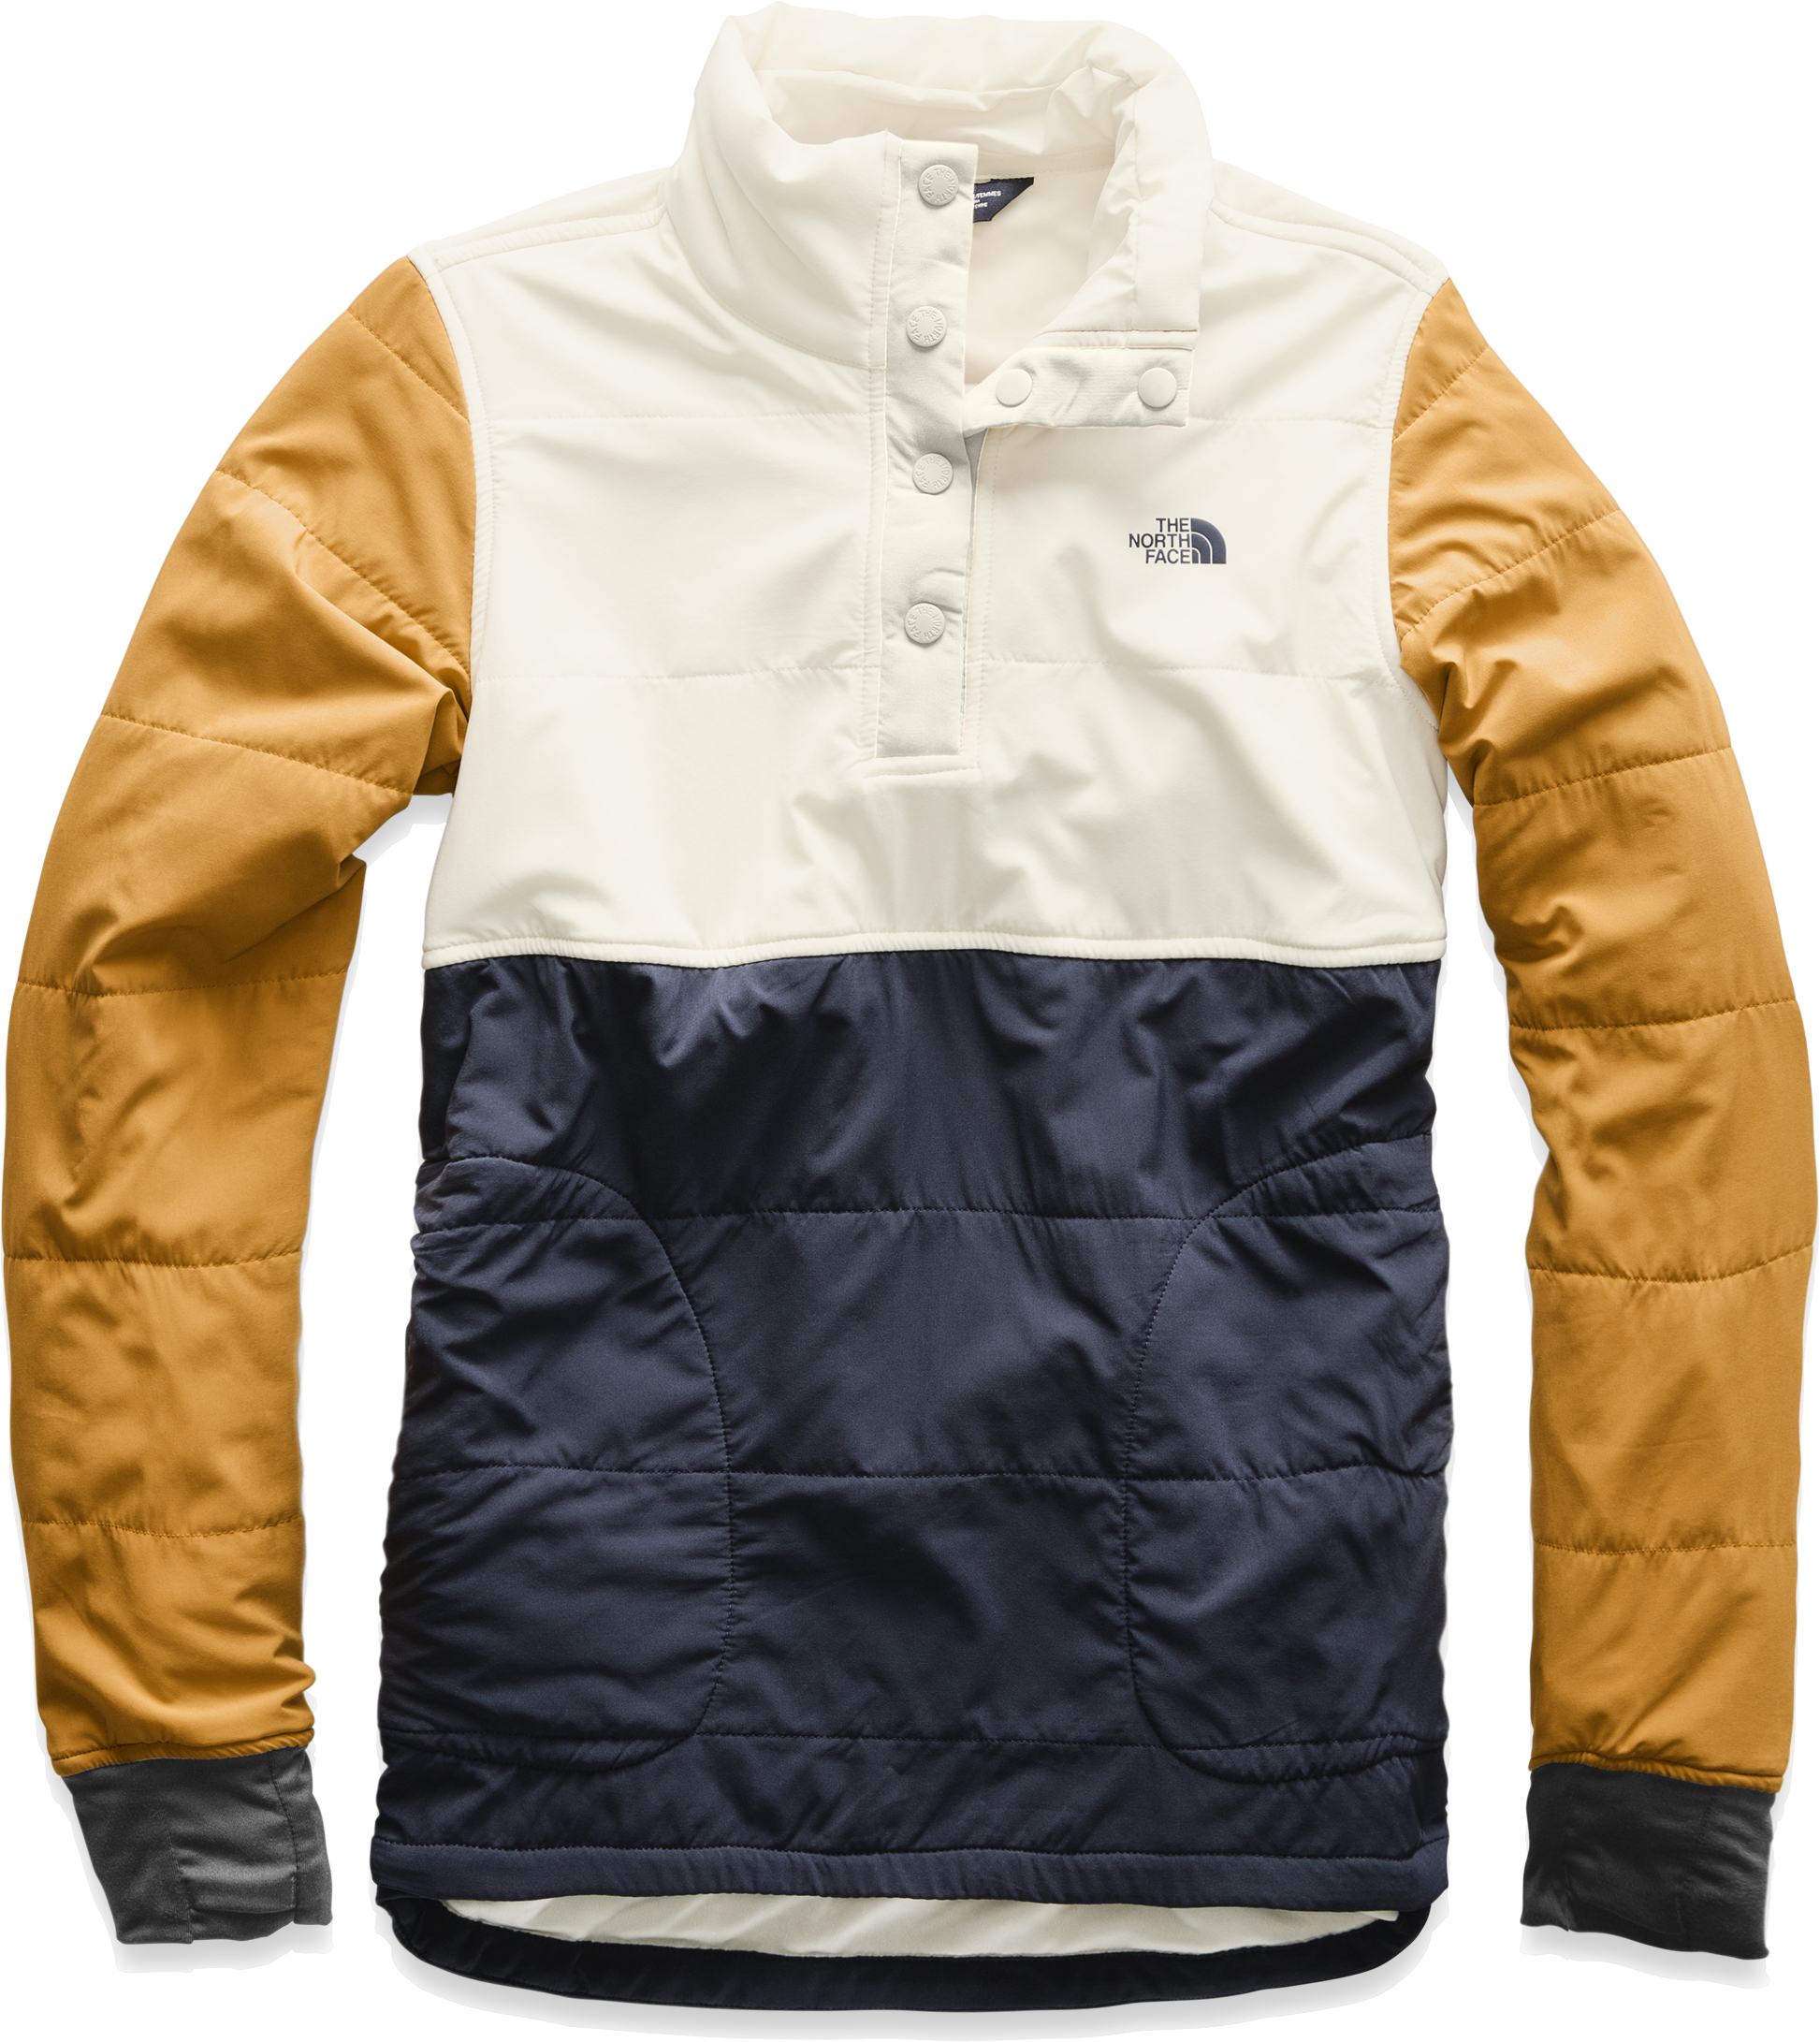 ad3417dca6f5 The North Face All products